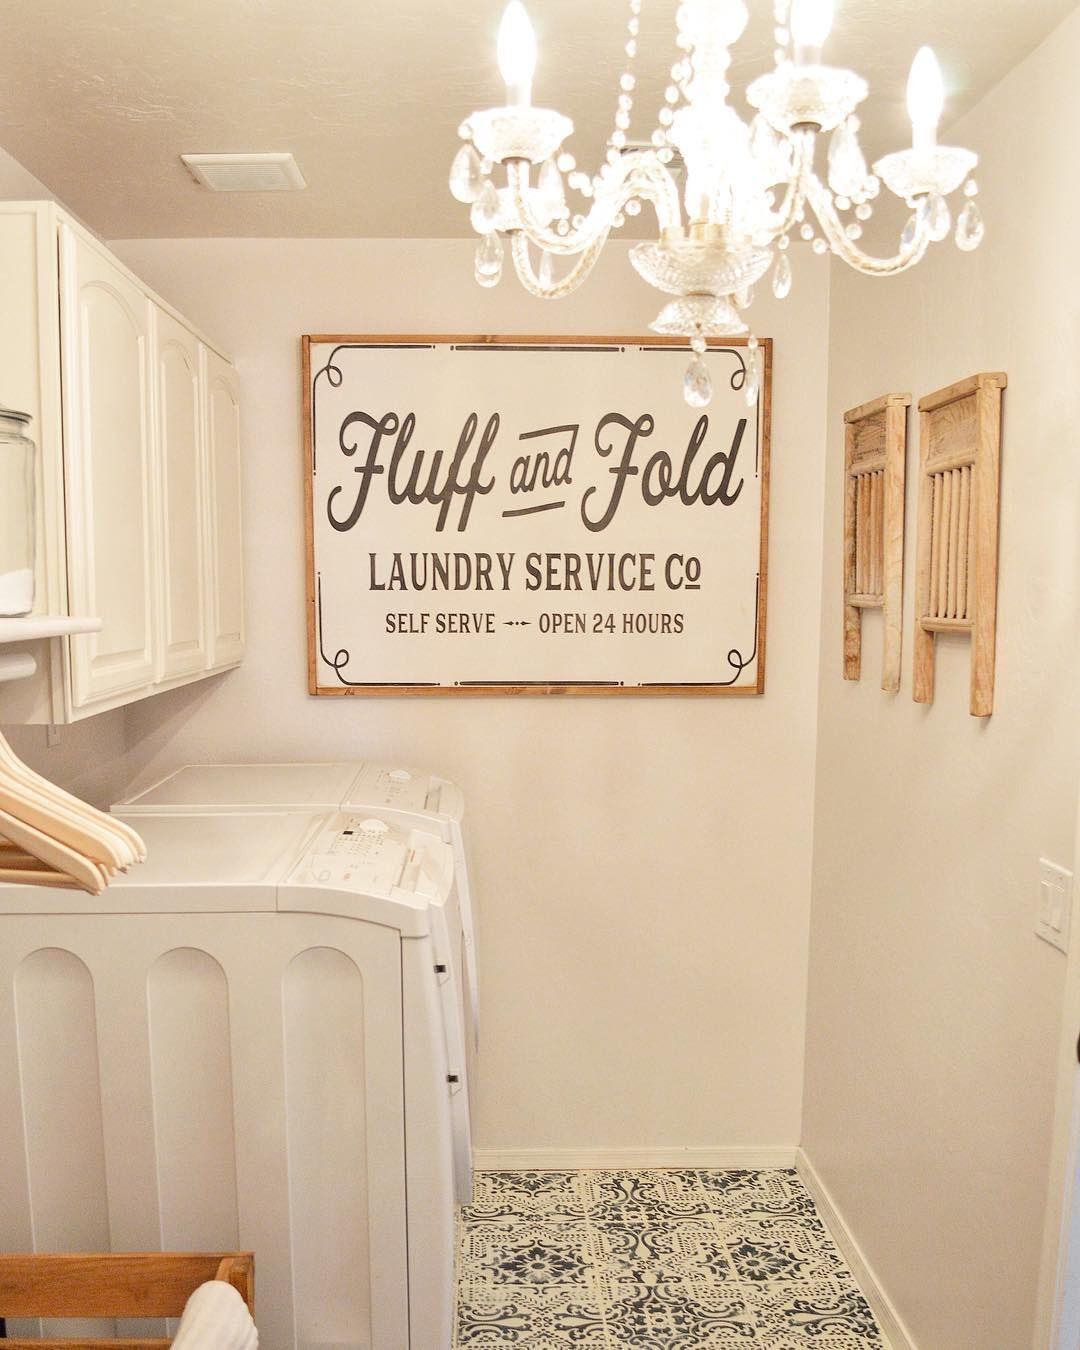 Pin By Kasey Woodworth On Laundry Rooms And Mud Rooms Laundy Room Laundry Room Decor Laundry Room Signs Laundry room signs for home diy home